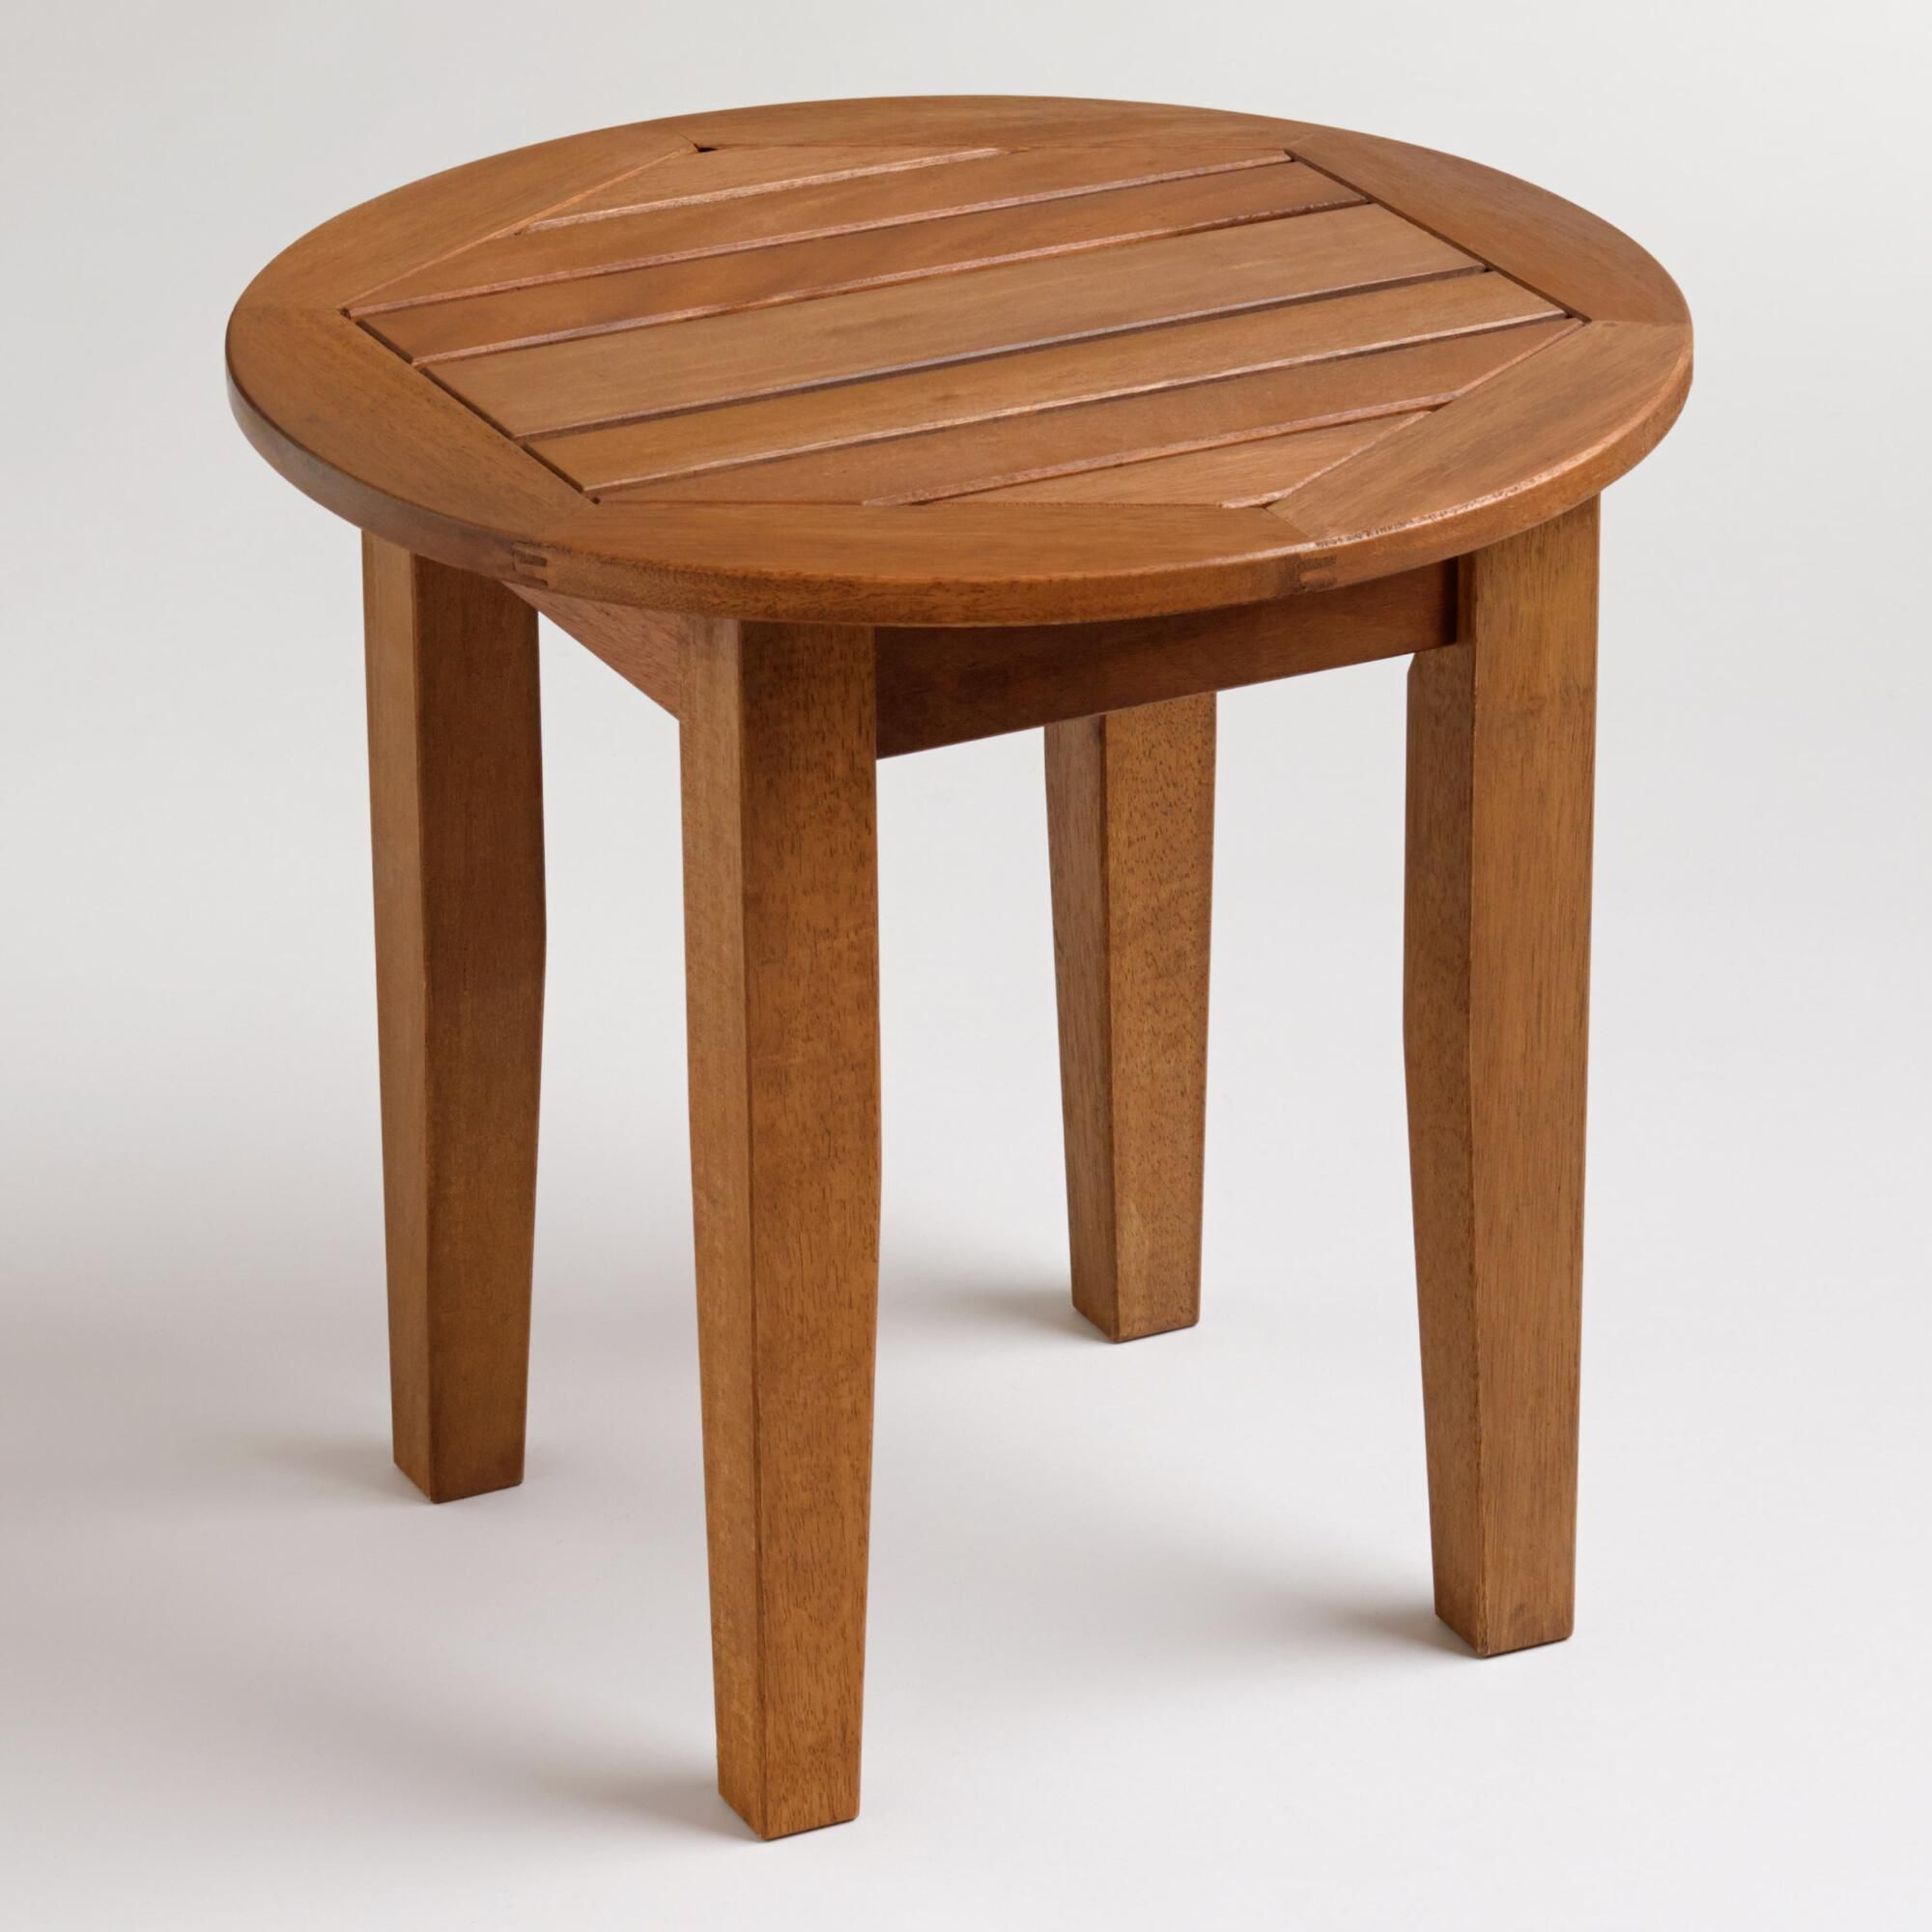 Wood St Martin Side Table Outdoor Entertaining Decor Side Table Decor [ 2000 x 2000 Pixel ]